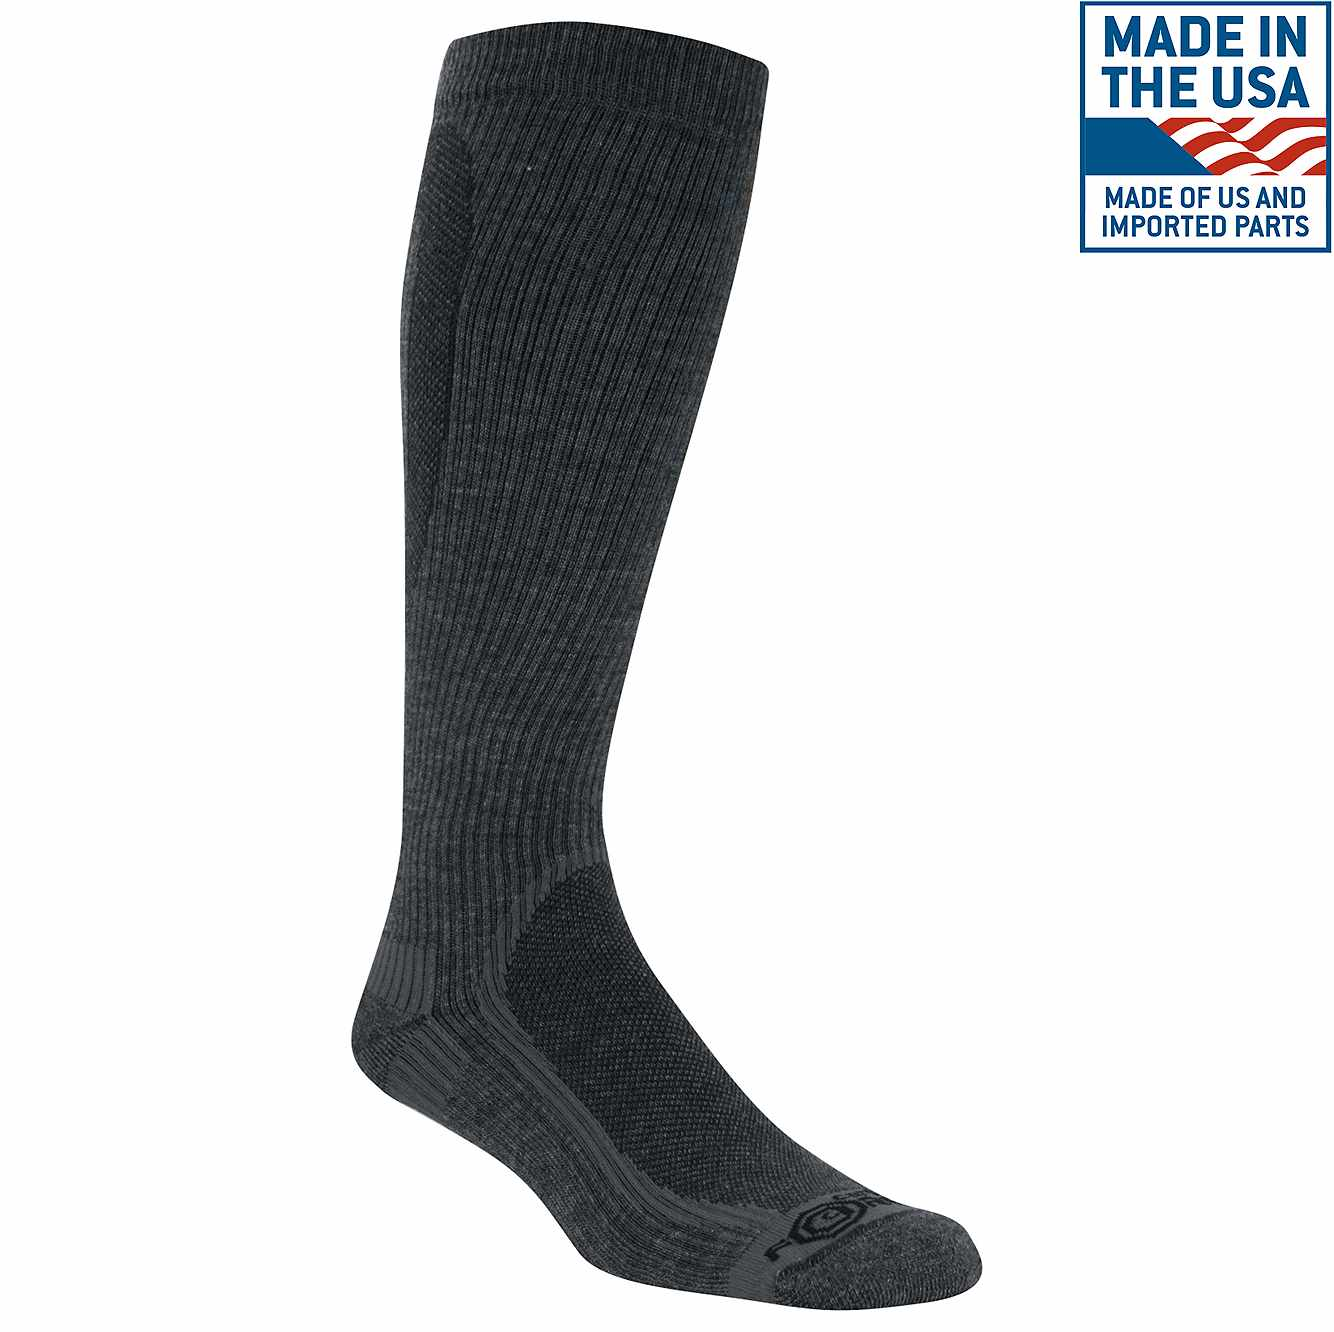 Picture of Carhartt Force® Active Compression Sock in Charcoal Heather